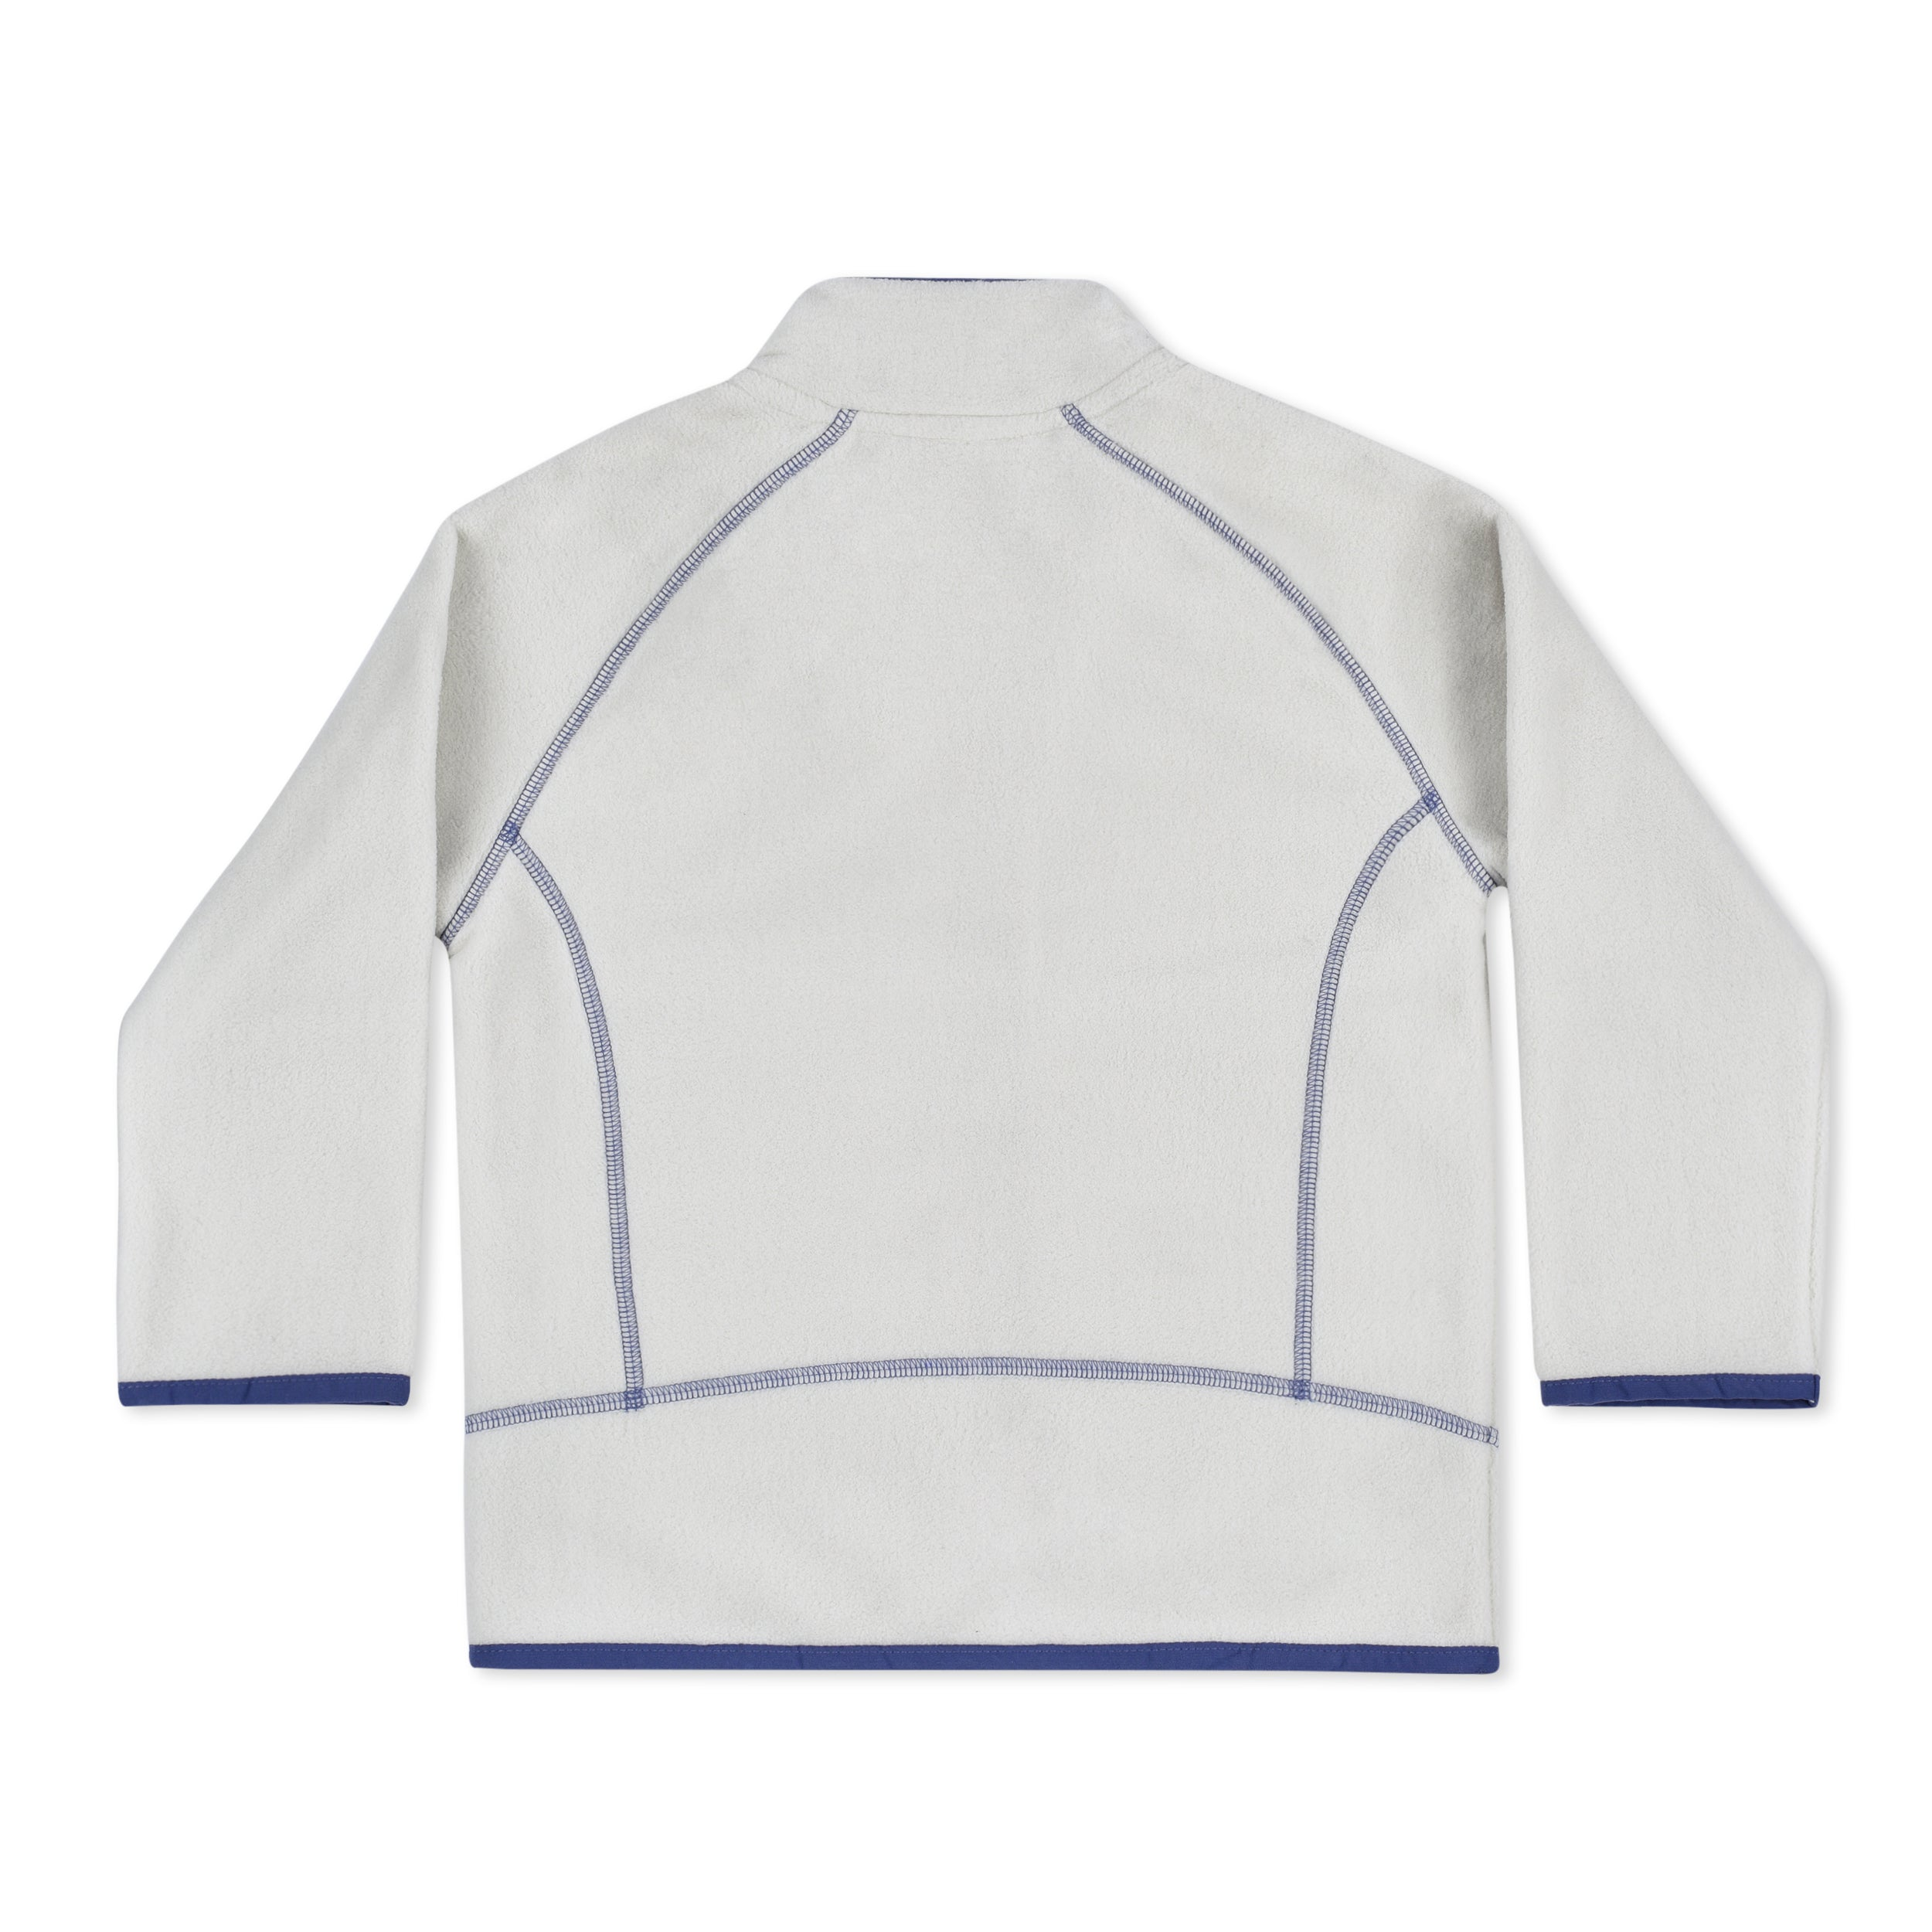 200 Series Polartec® Fleece Jacket, Oatmeal White  (Sizing runs small, recommend sizing up)